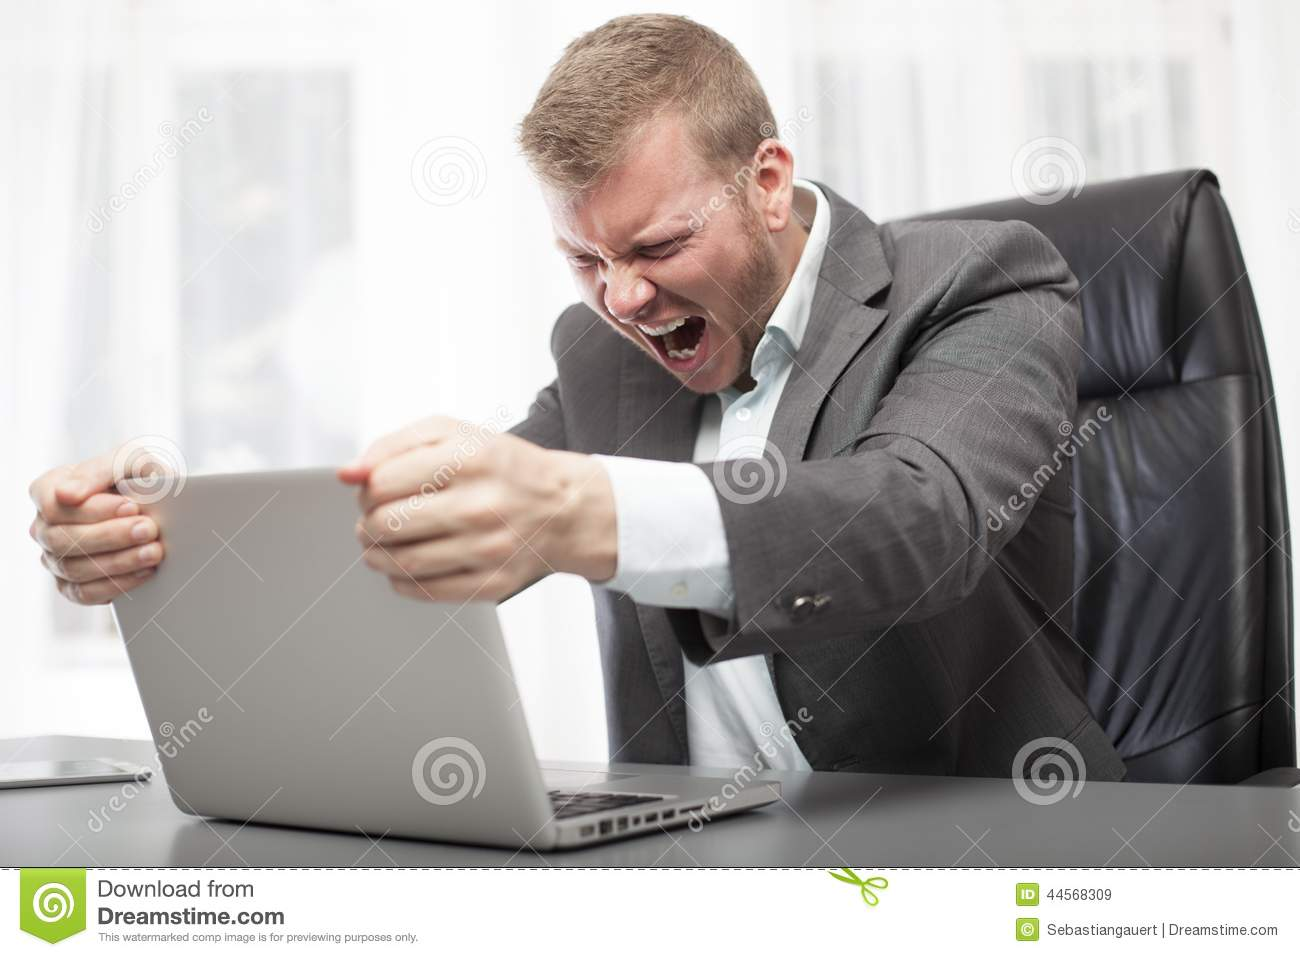 Angry businessman shaking his laptop computer